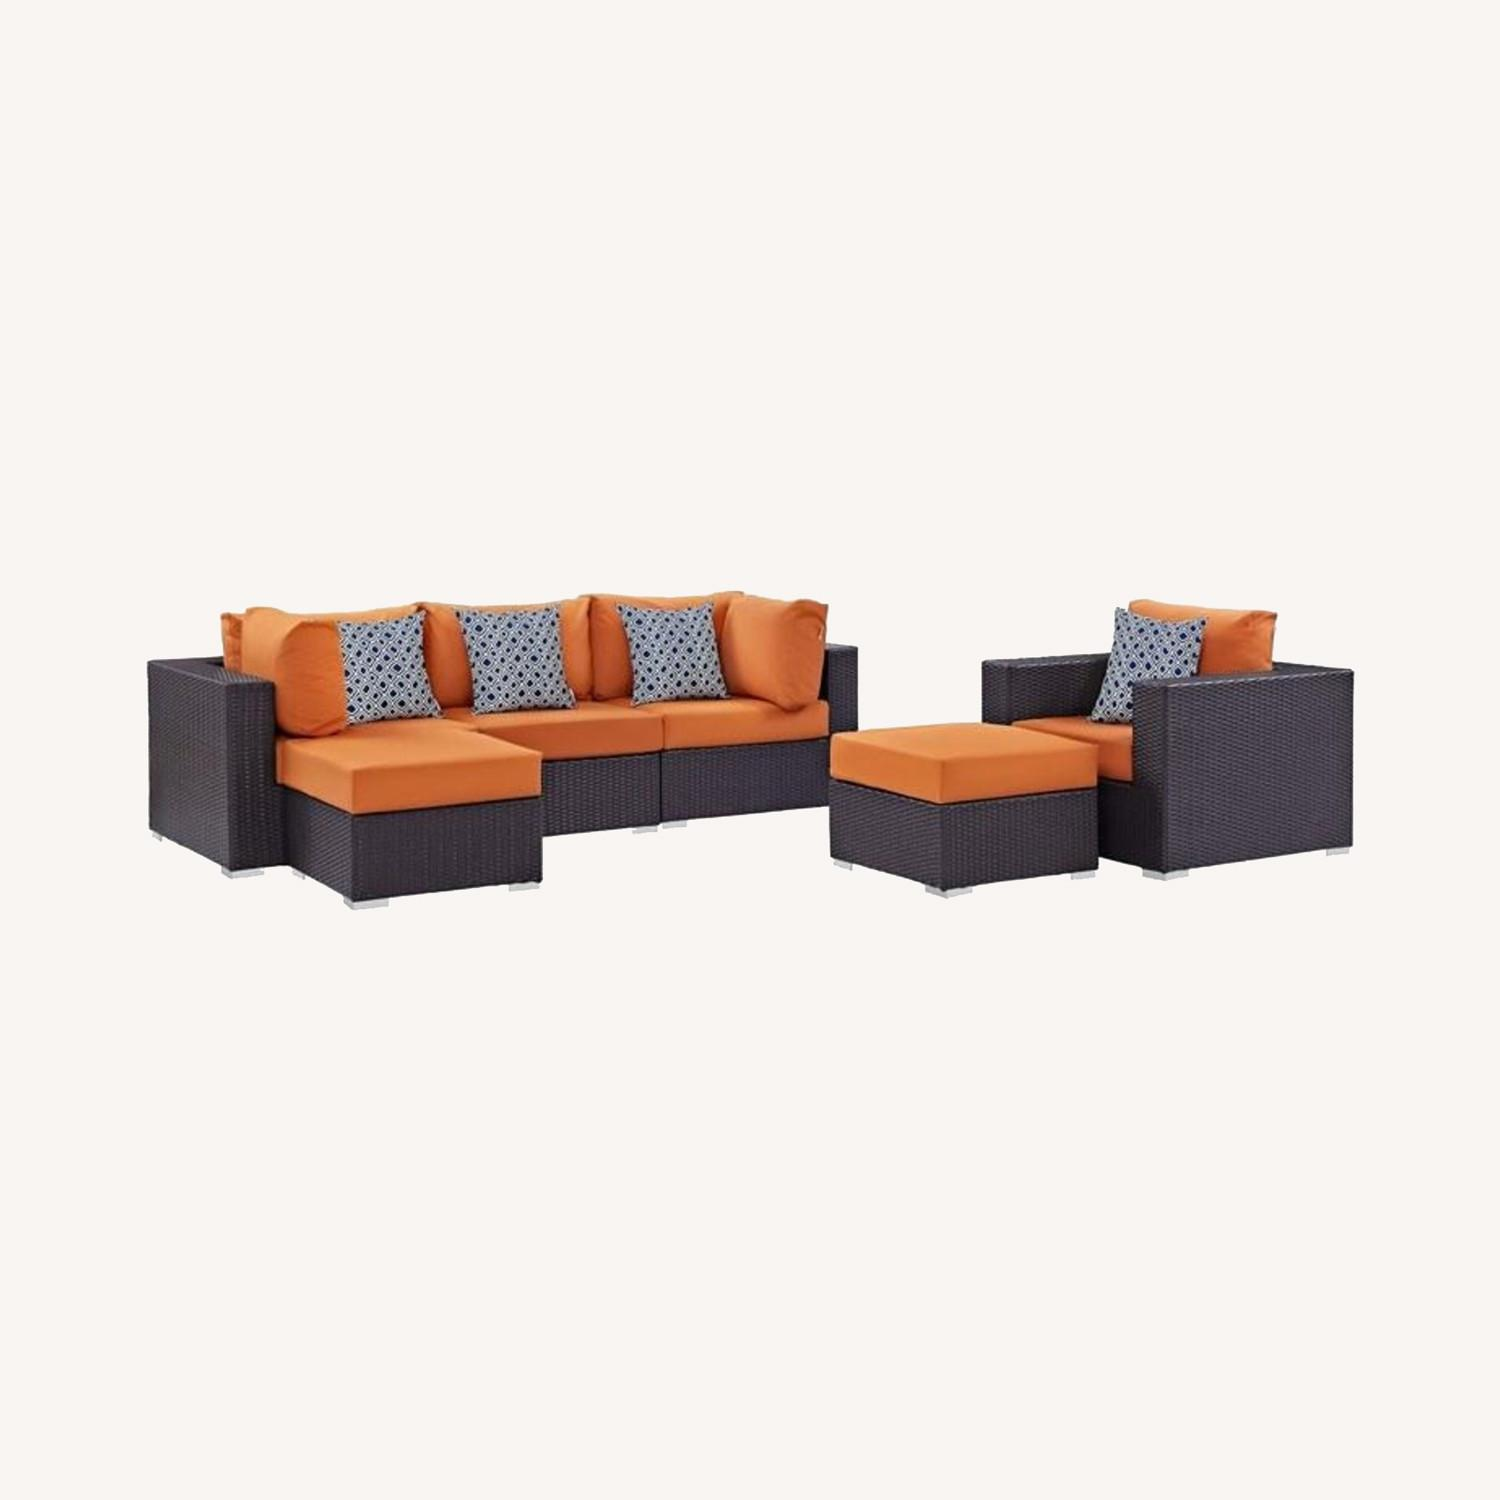 6-Piece Outdoor Sectional In Orange Fabric - image-5